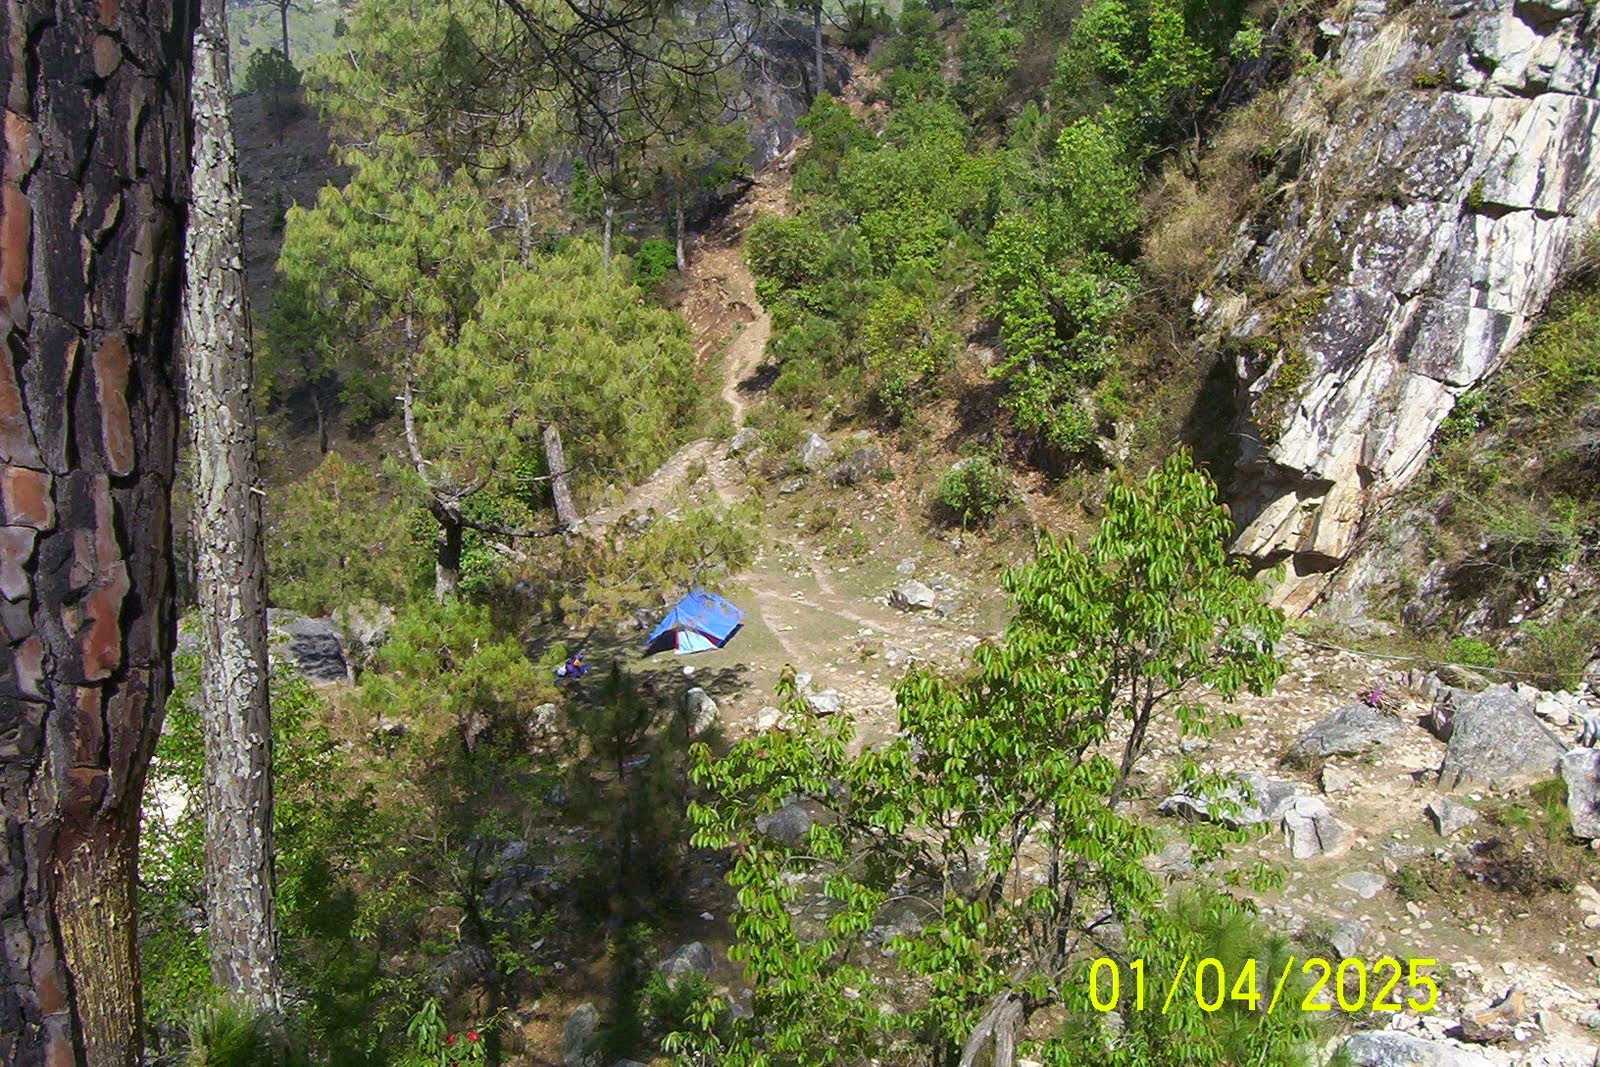 camping in forest garhwal uttarakhand